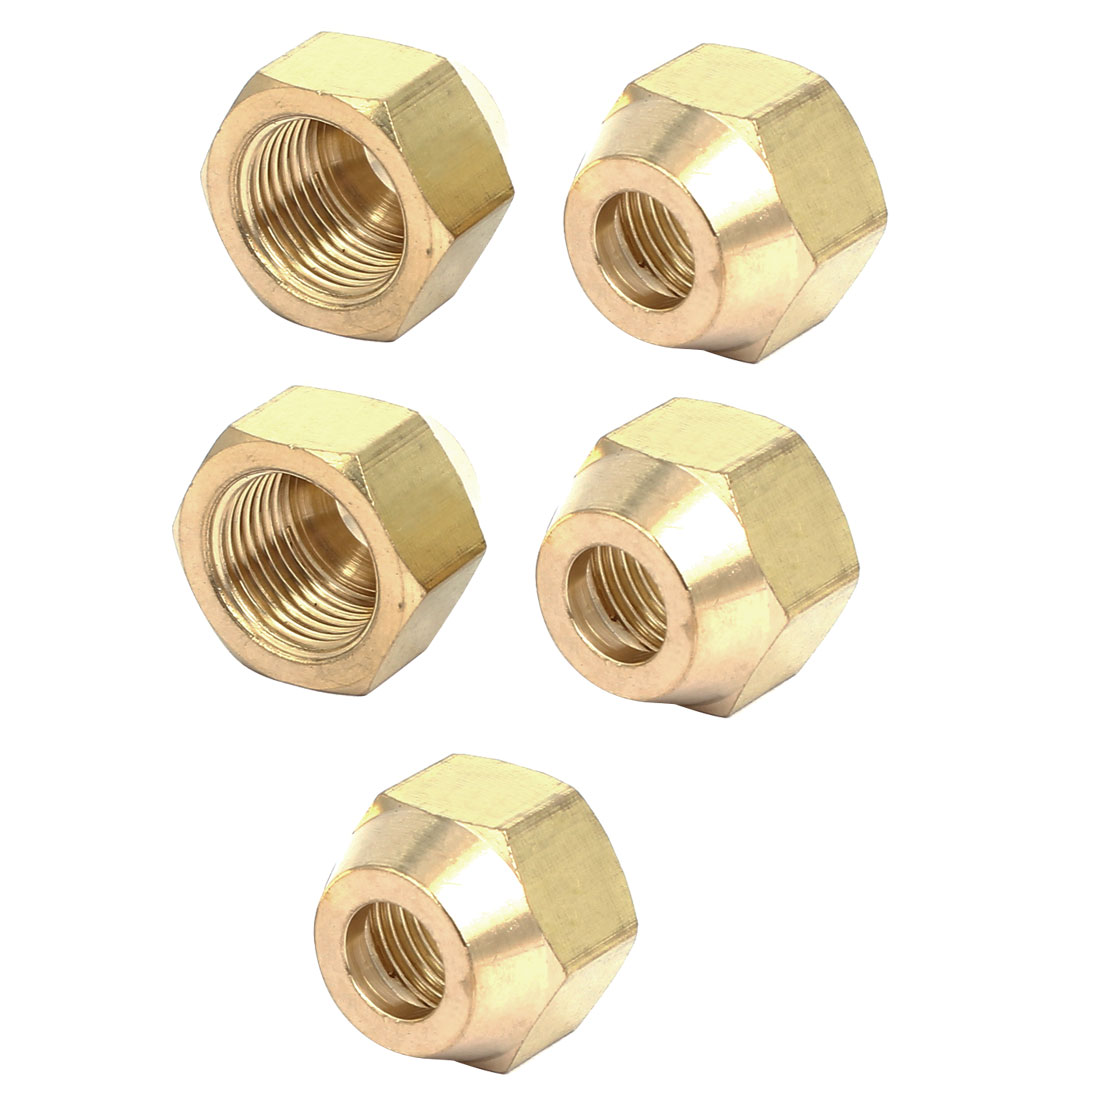 3/8BSP Brass Flare Nuts Air Conditioner Parts Fittings 5pcs for 10mm Dia Pipe